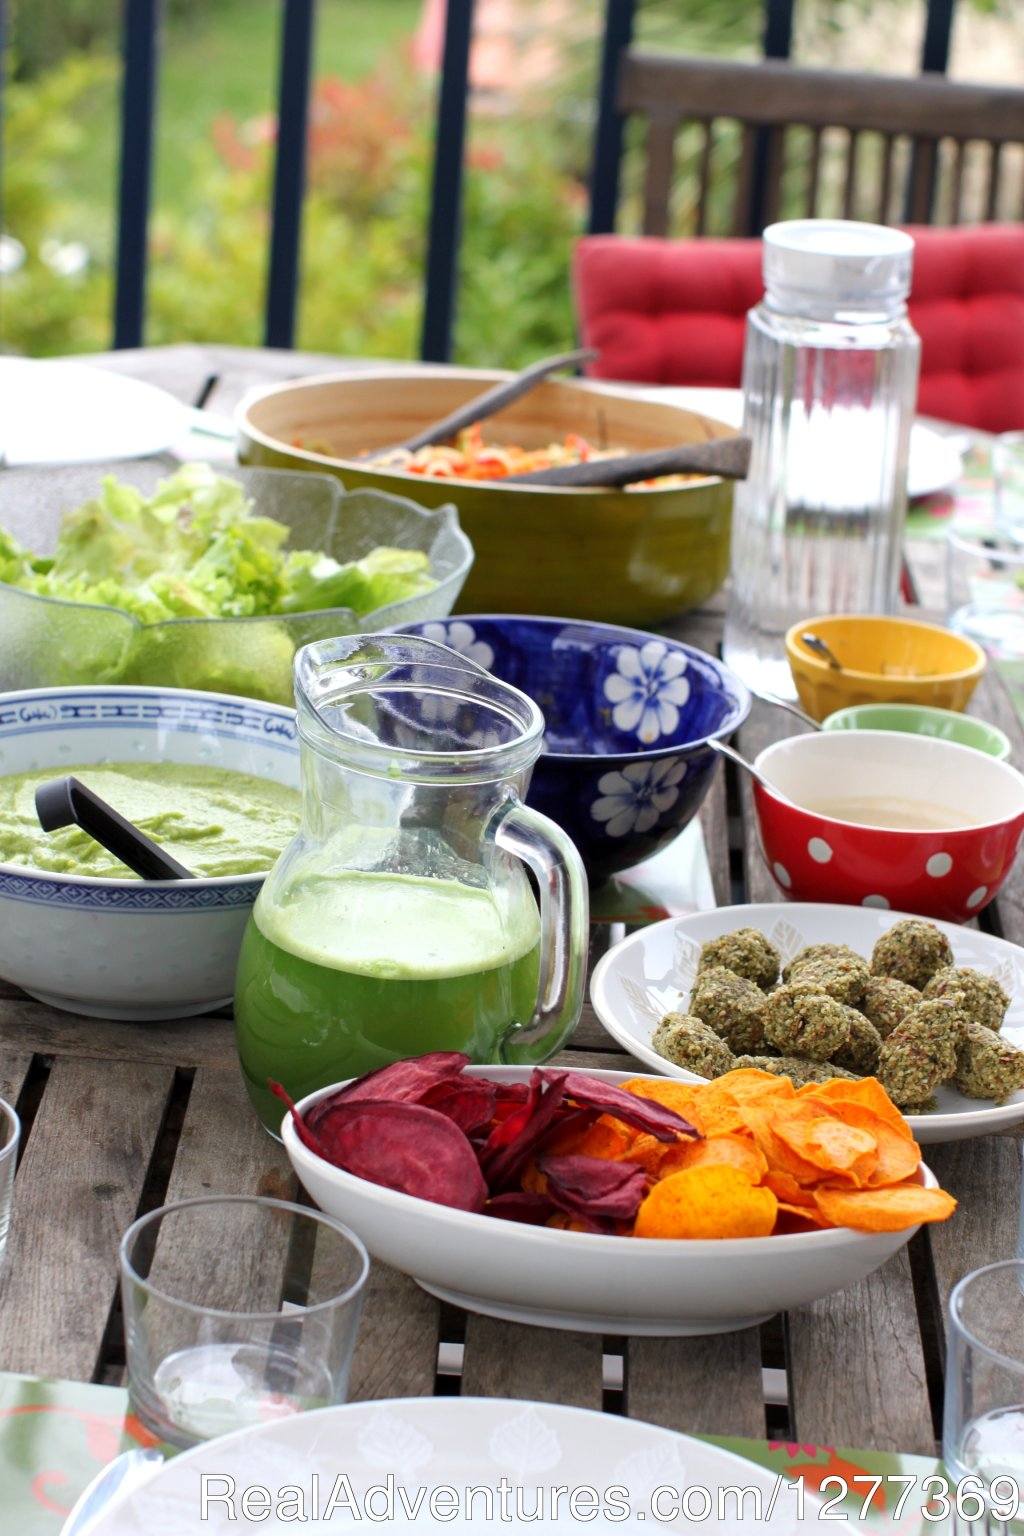 Raw gourmet meal | Image #10/17 | Yoga, Gourmet Raw food/chocolate South of France